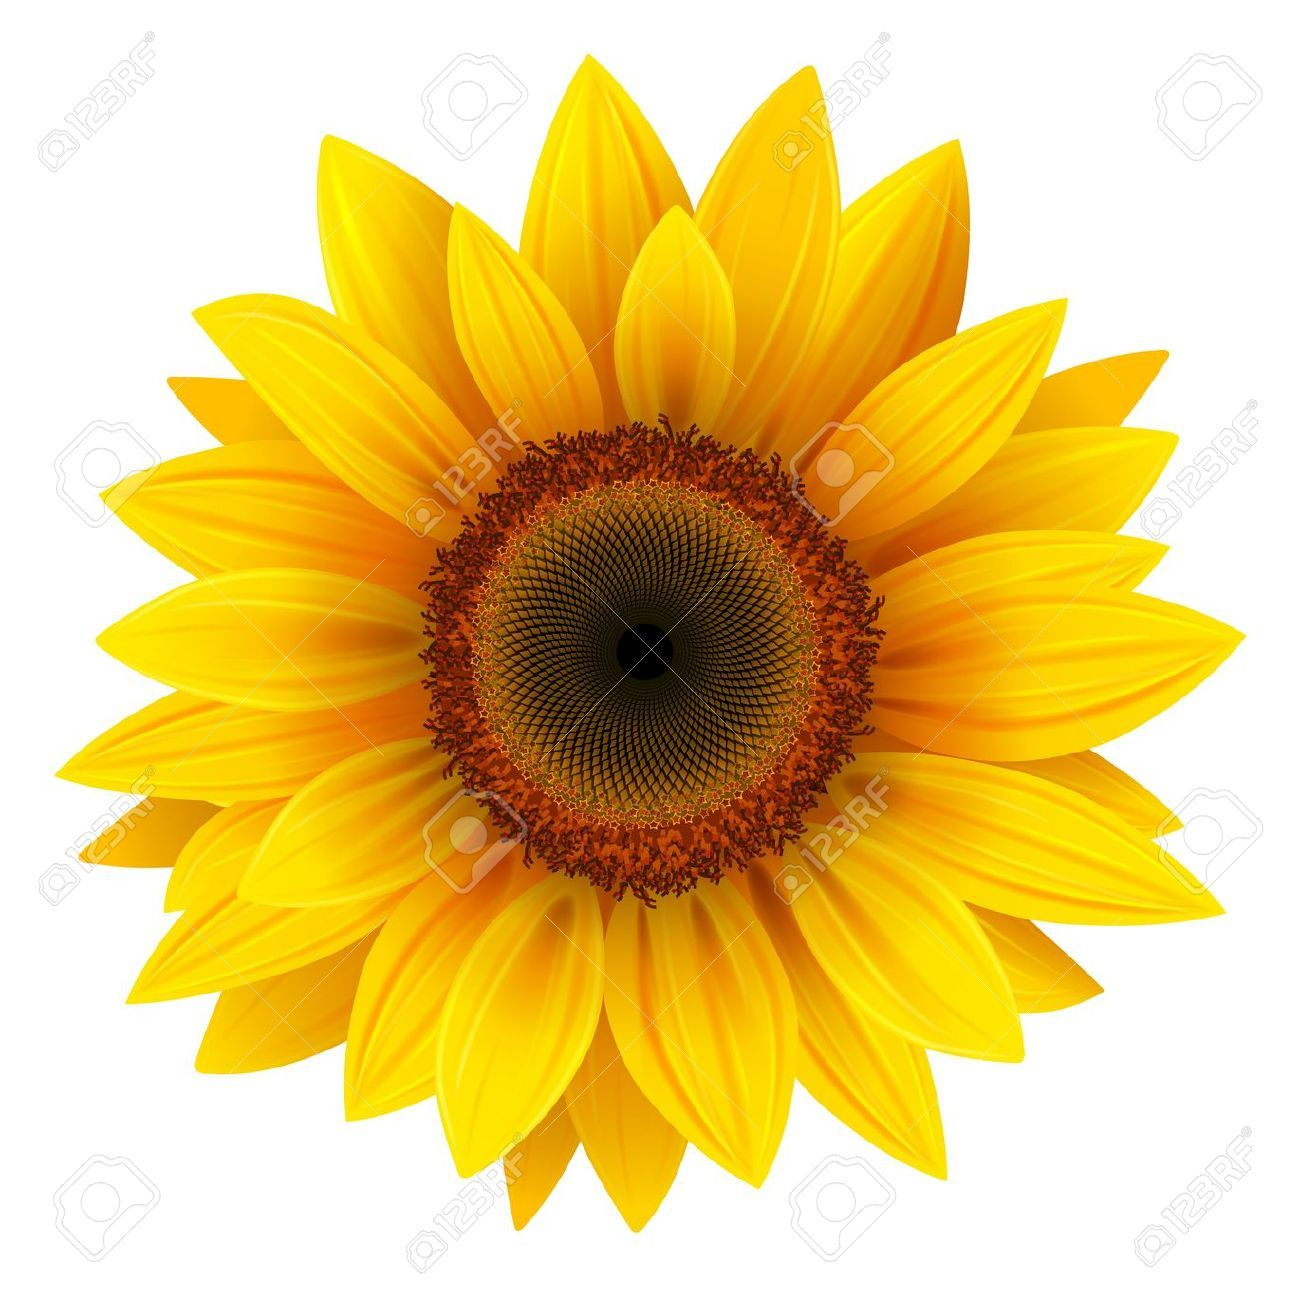 Sunflower Stock Photos, Pictures, Royalty Free Sunflower.